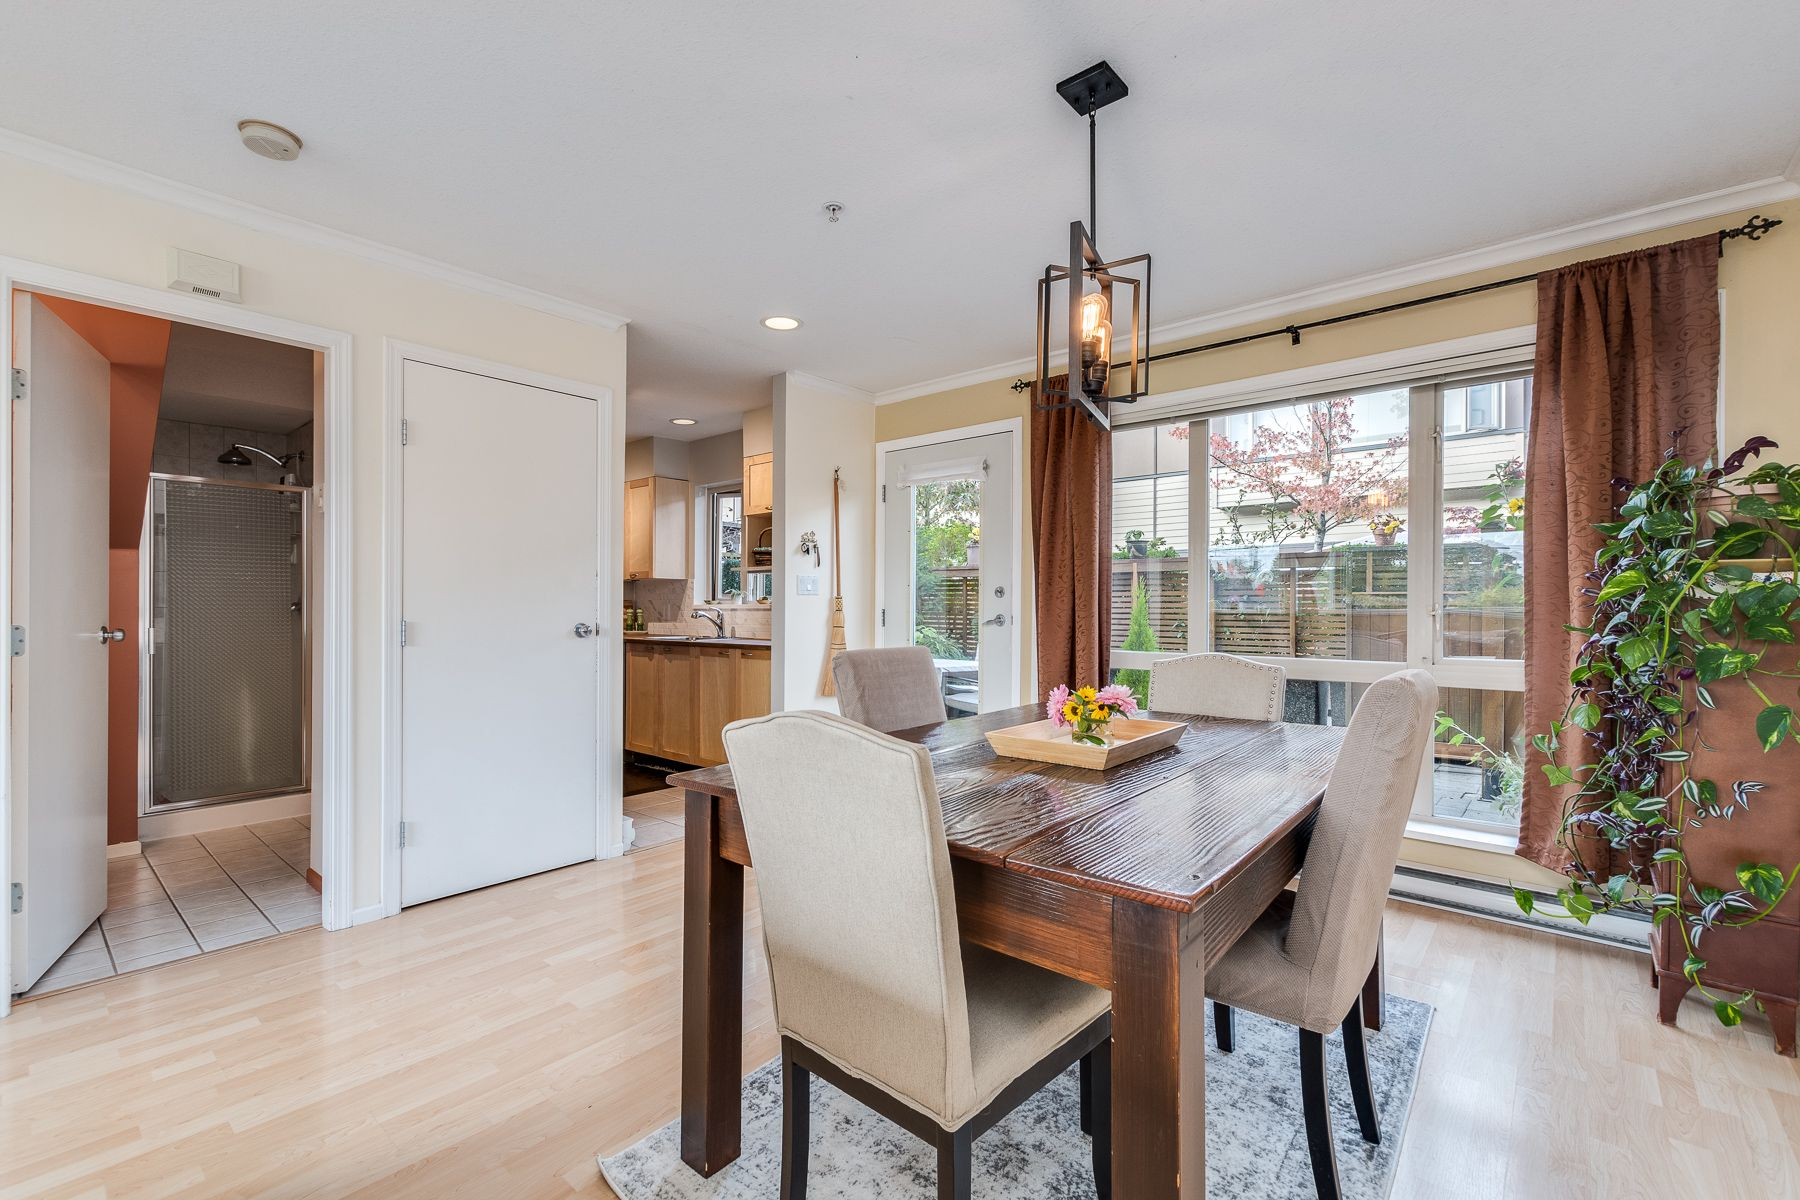 Photo 7: Photos: 7-2389 Charles St in Vancouver: Grandview Woodland Townhouse for sale (Vancouver East)